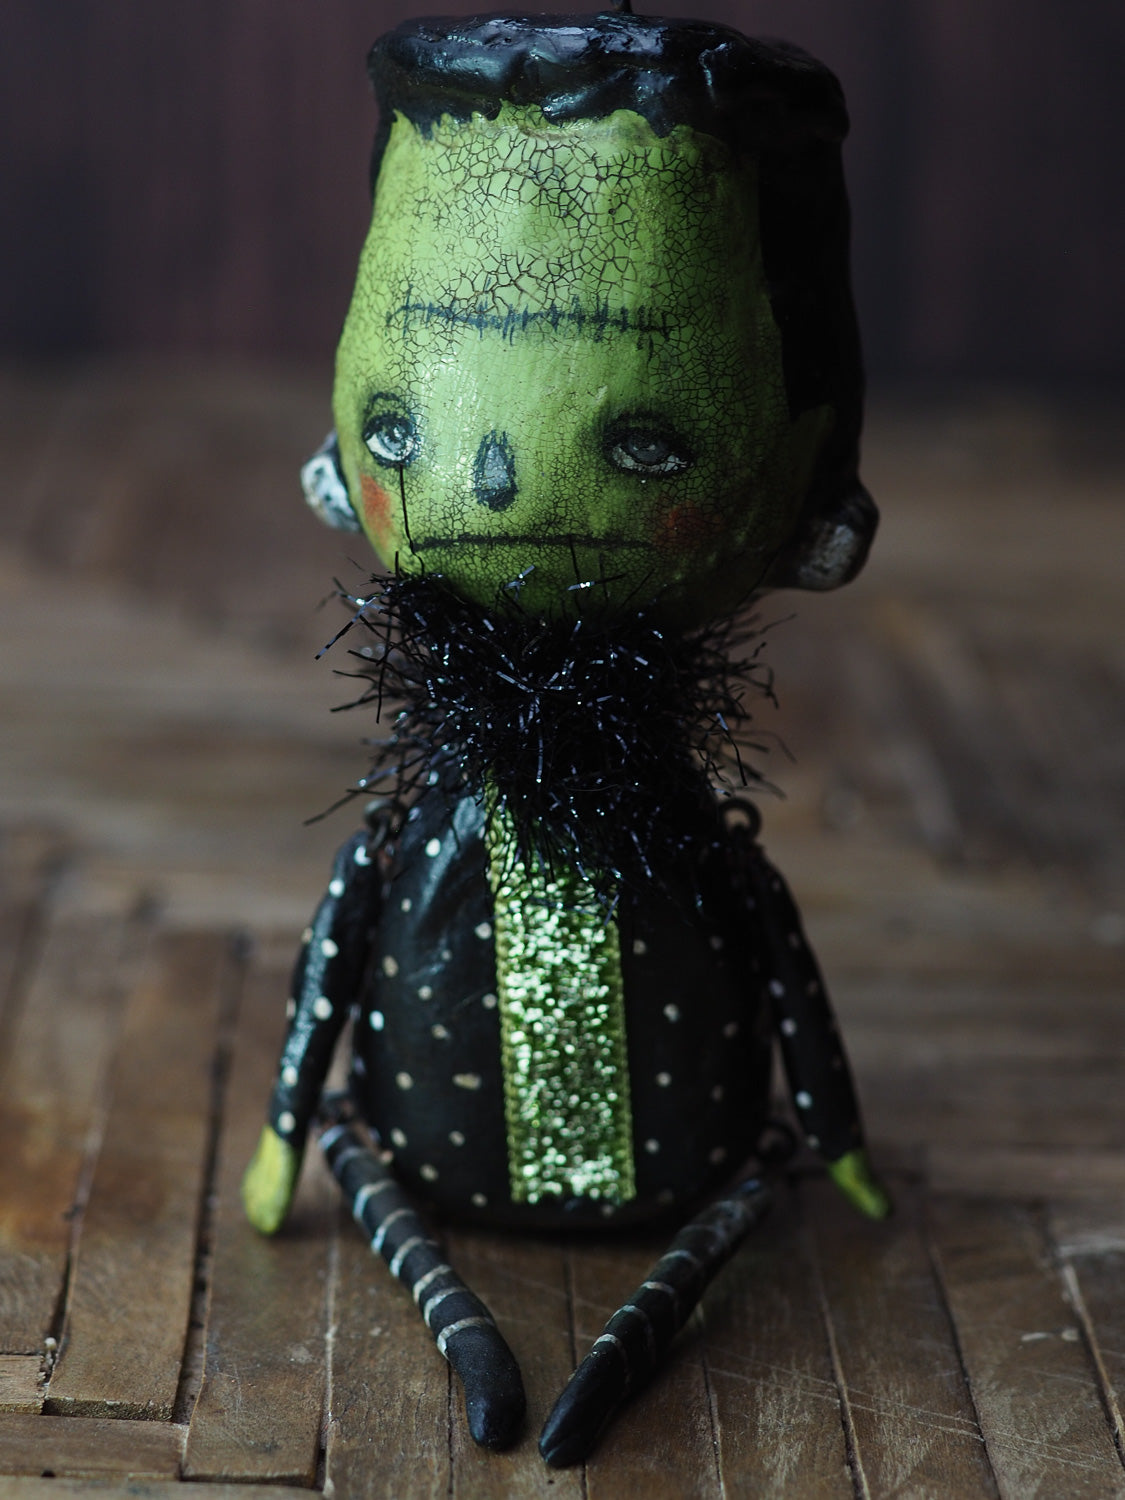 FRANKENSTEIN'S MONSTER. Original Halloween art doll by Danita., Art Doll EXCLUDE-SALE by Danita Art